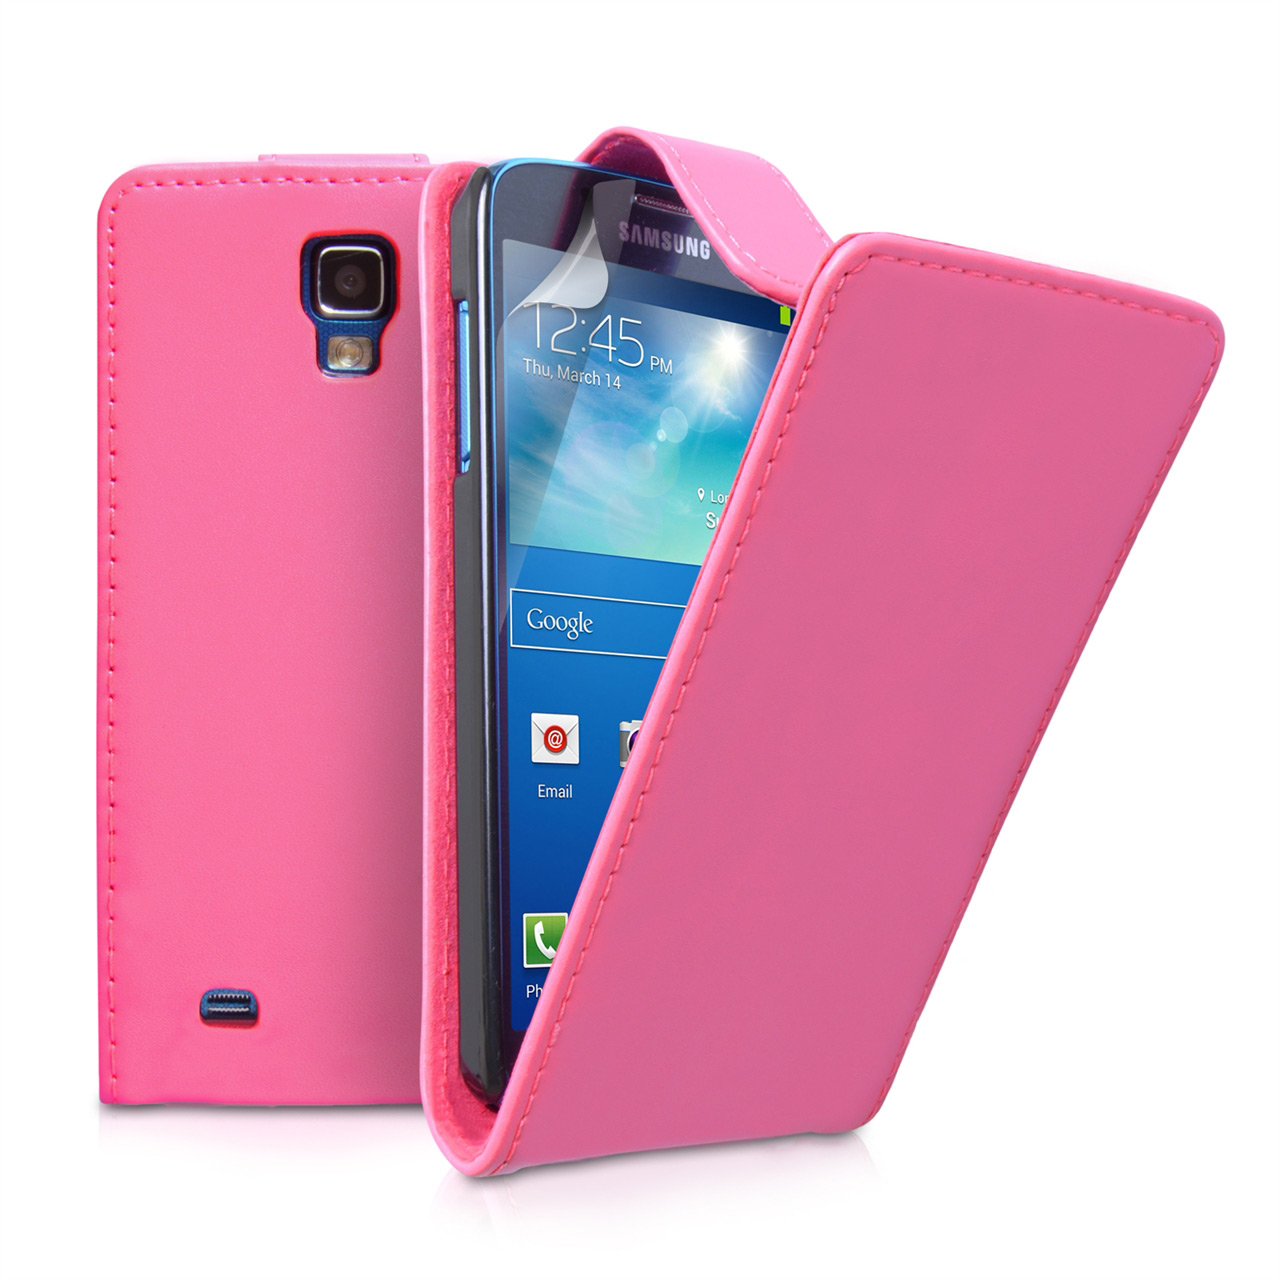 YouSave Samsung Galaxy S4 Active Leather Effect Flip Case - Hot Pink